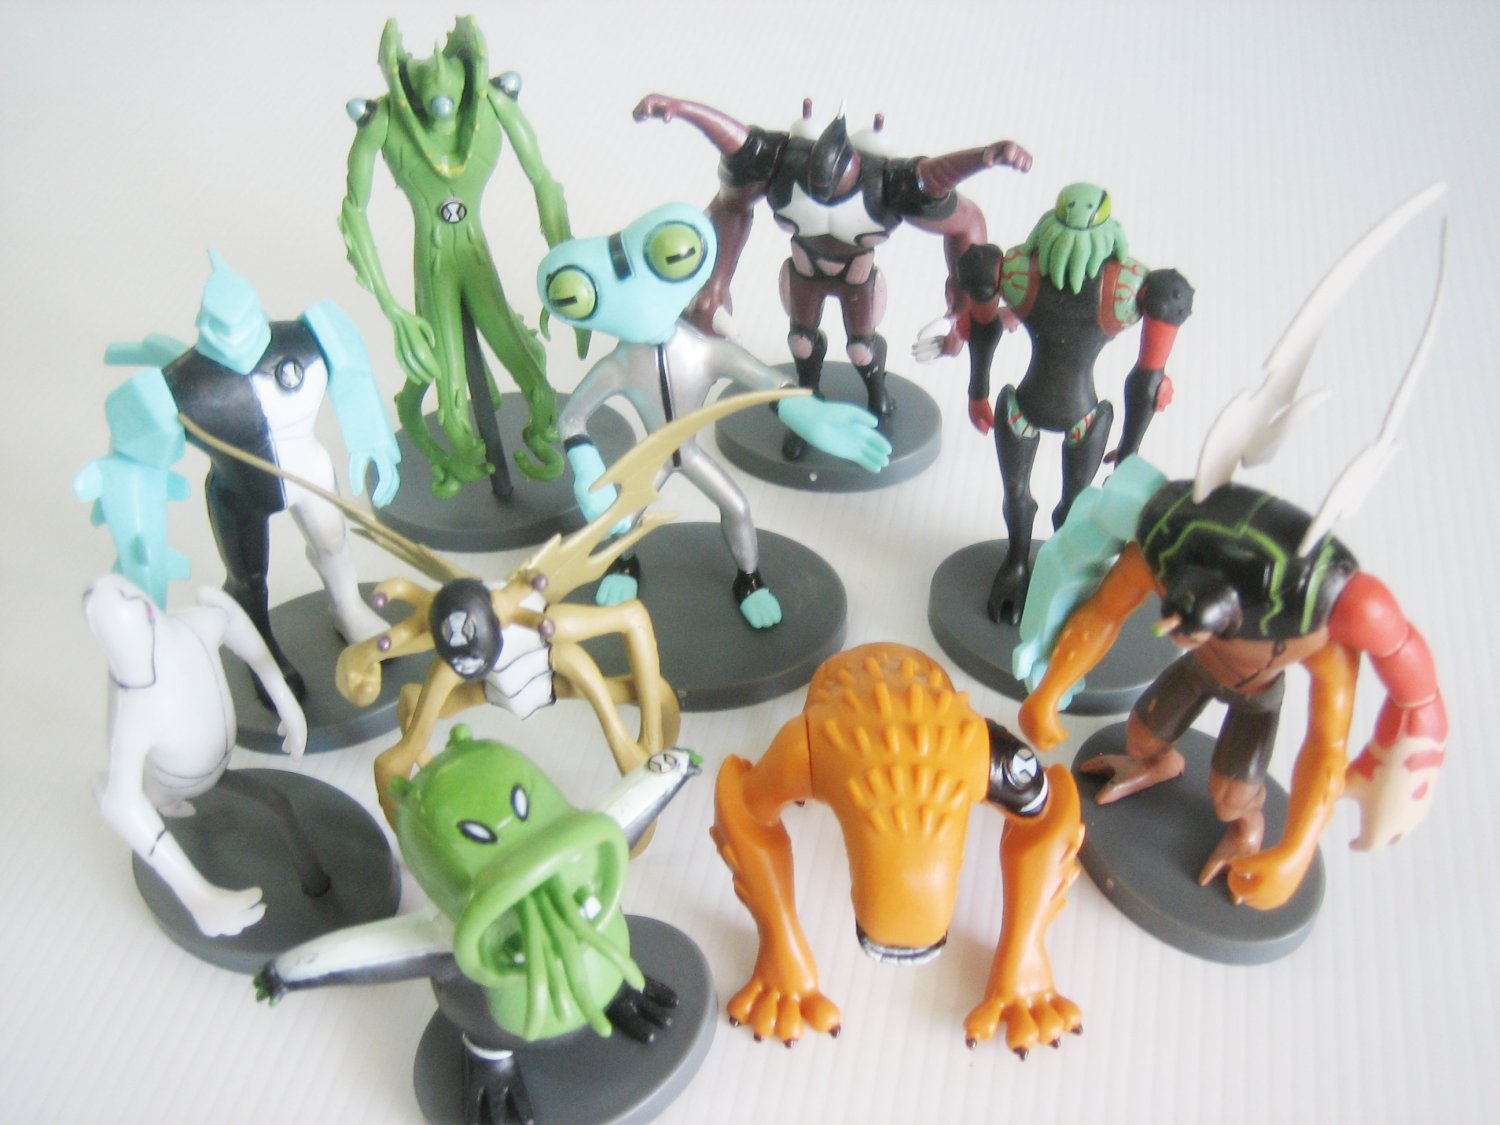 10pcs Ben 10 Small Figurines Cake Topper Collection Set 2